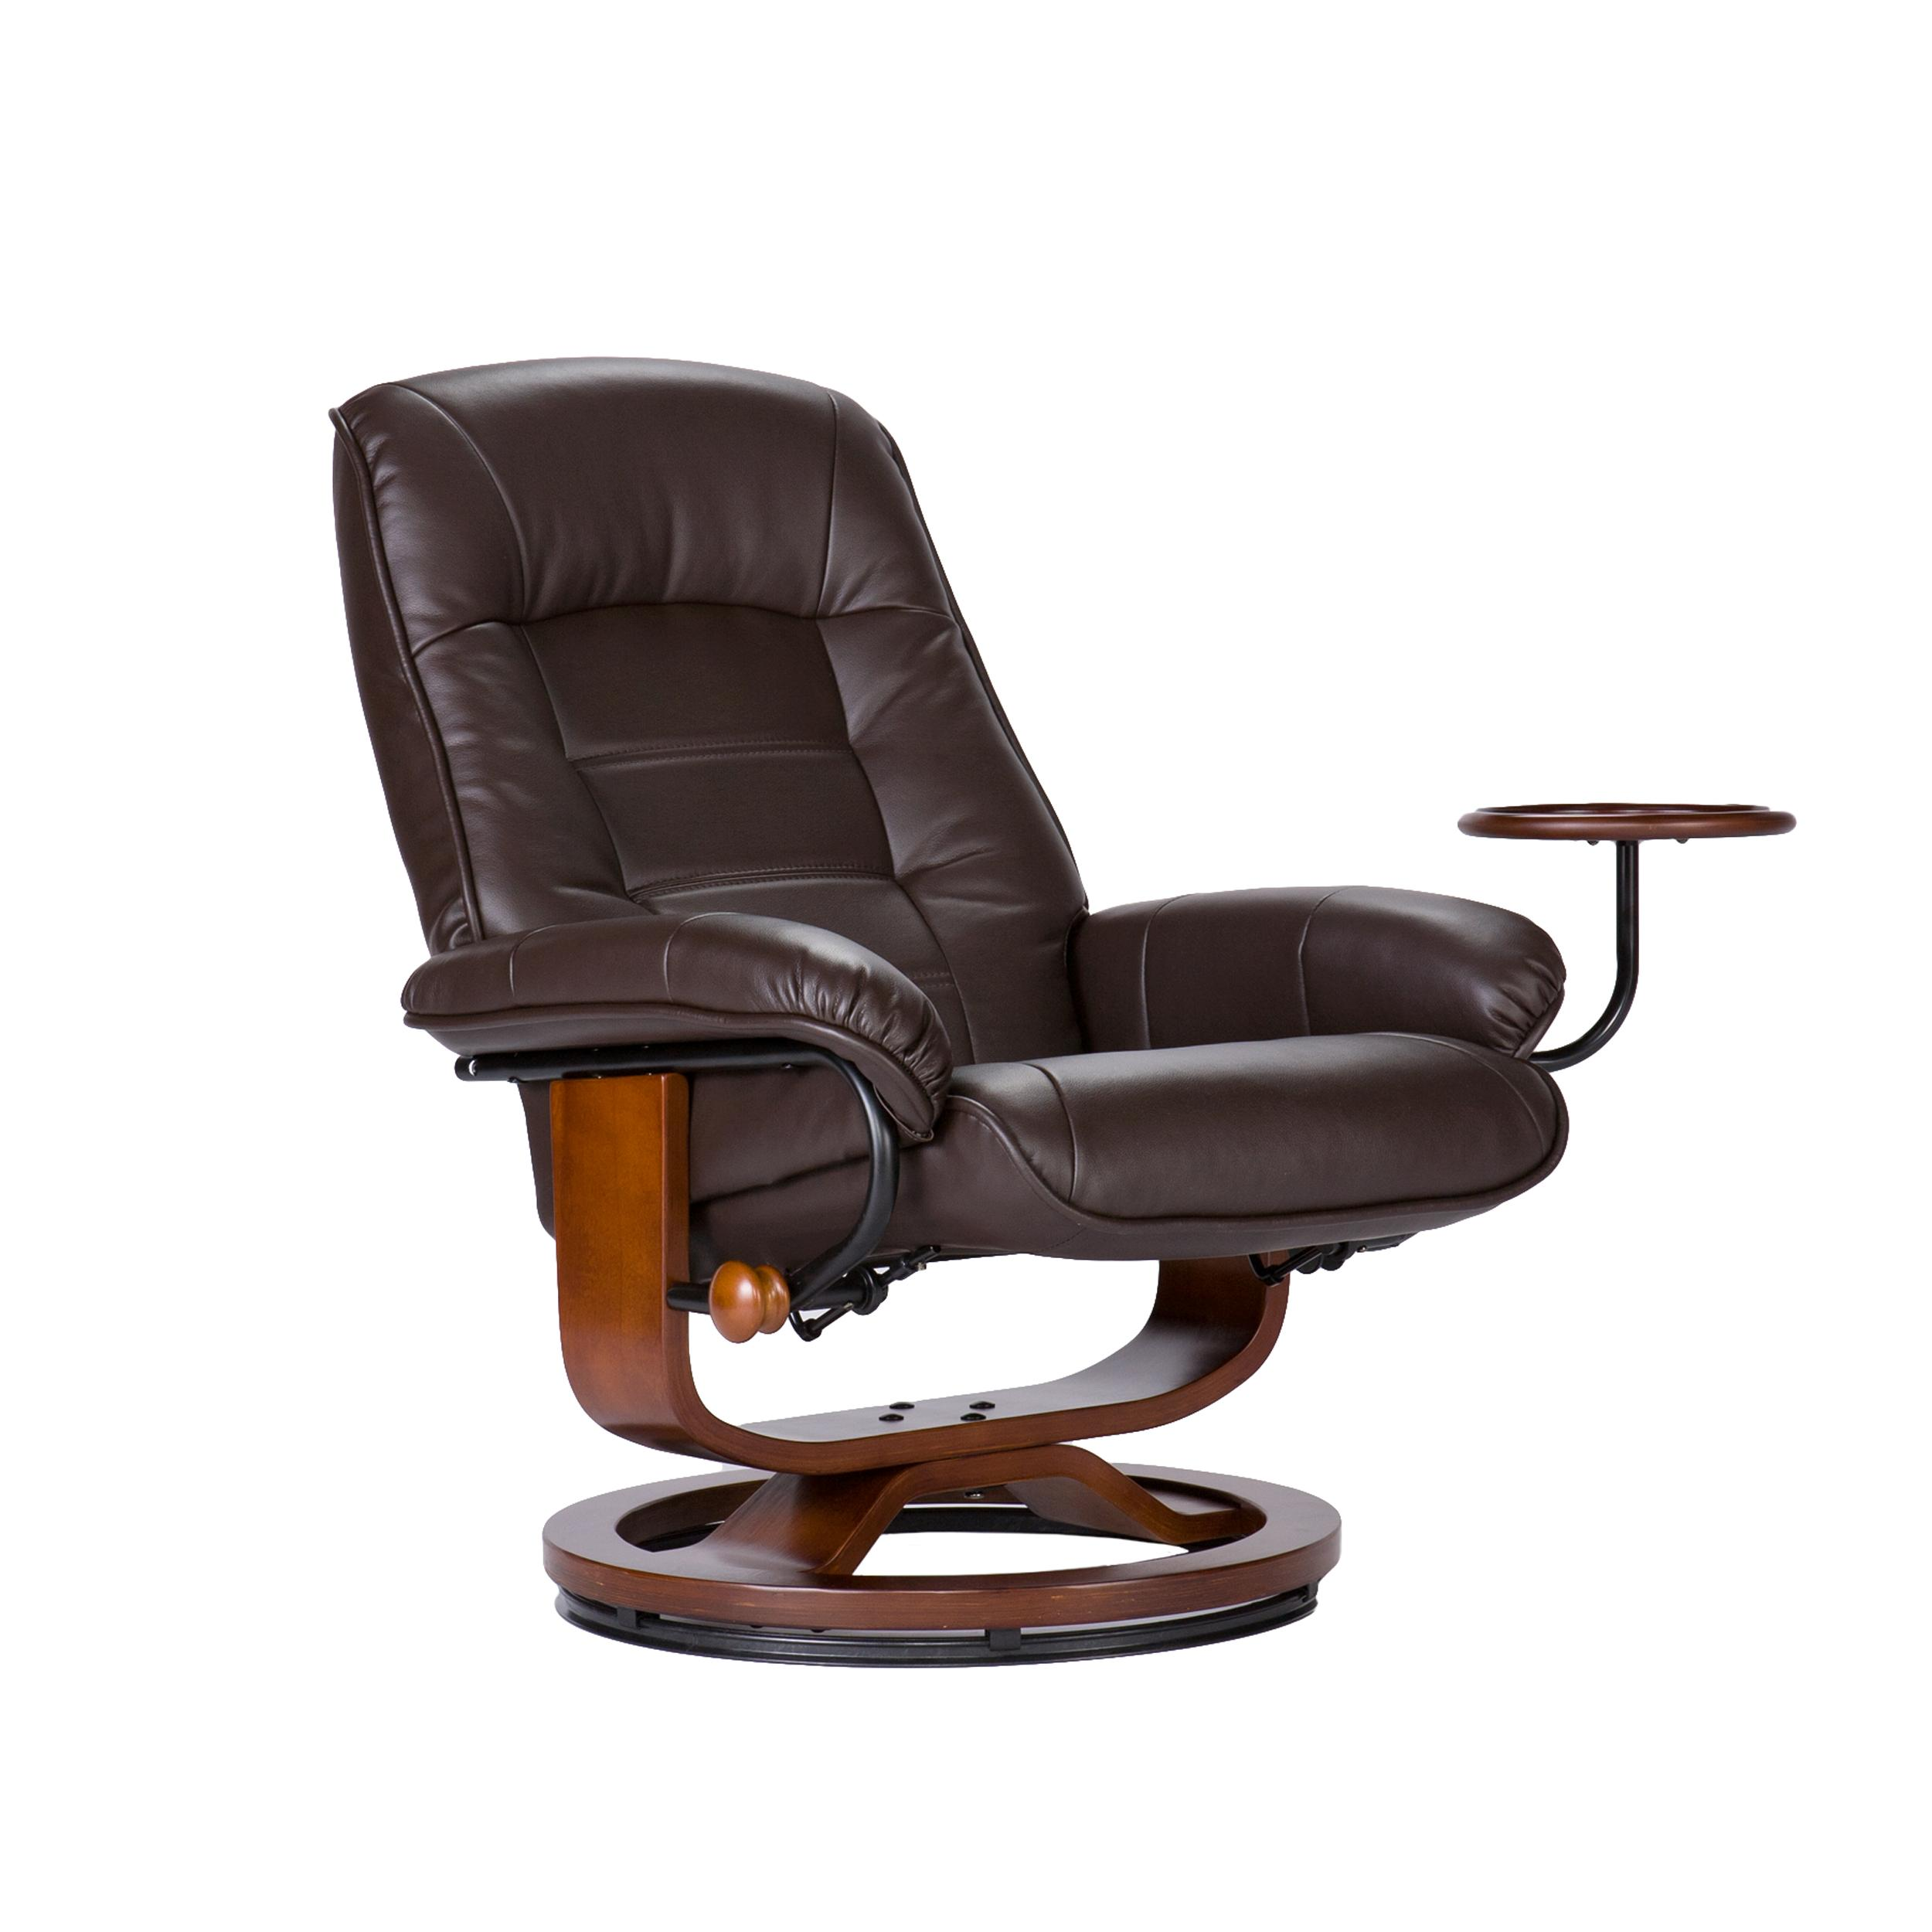 southern enterprises leather recliner with side table and